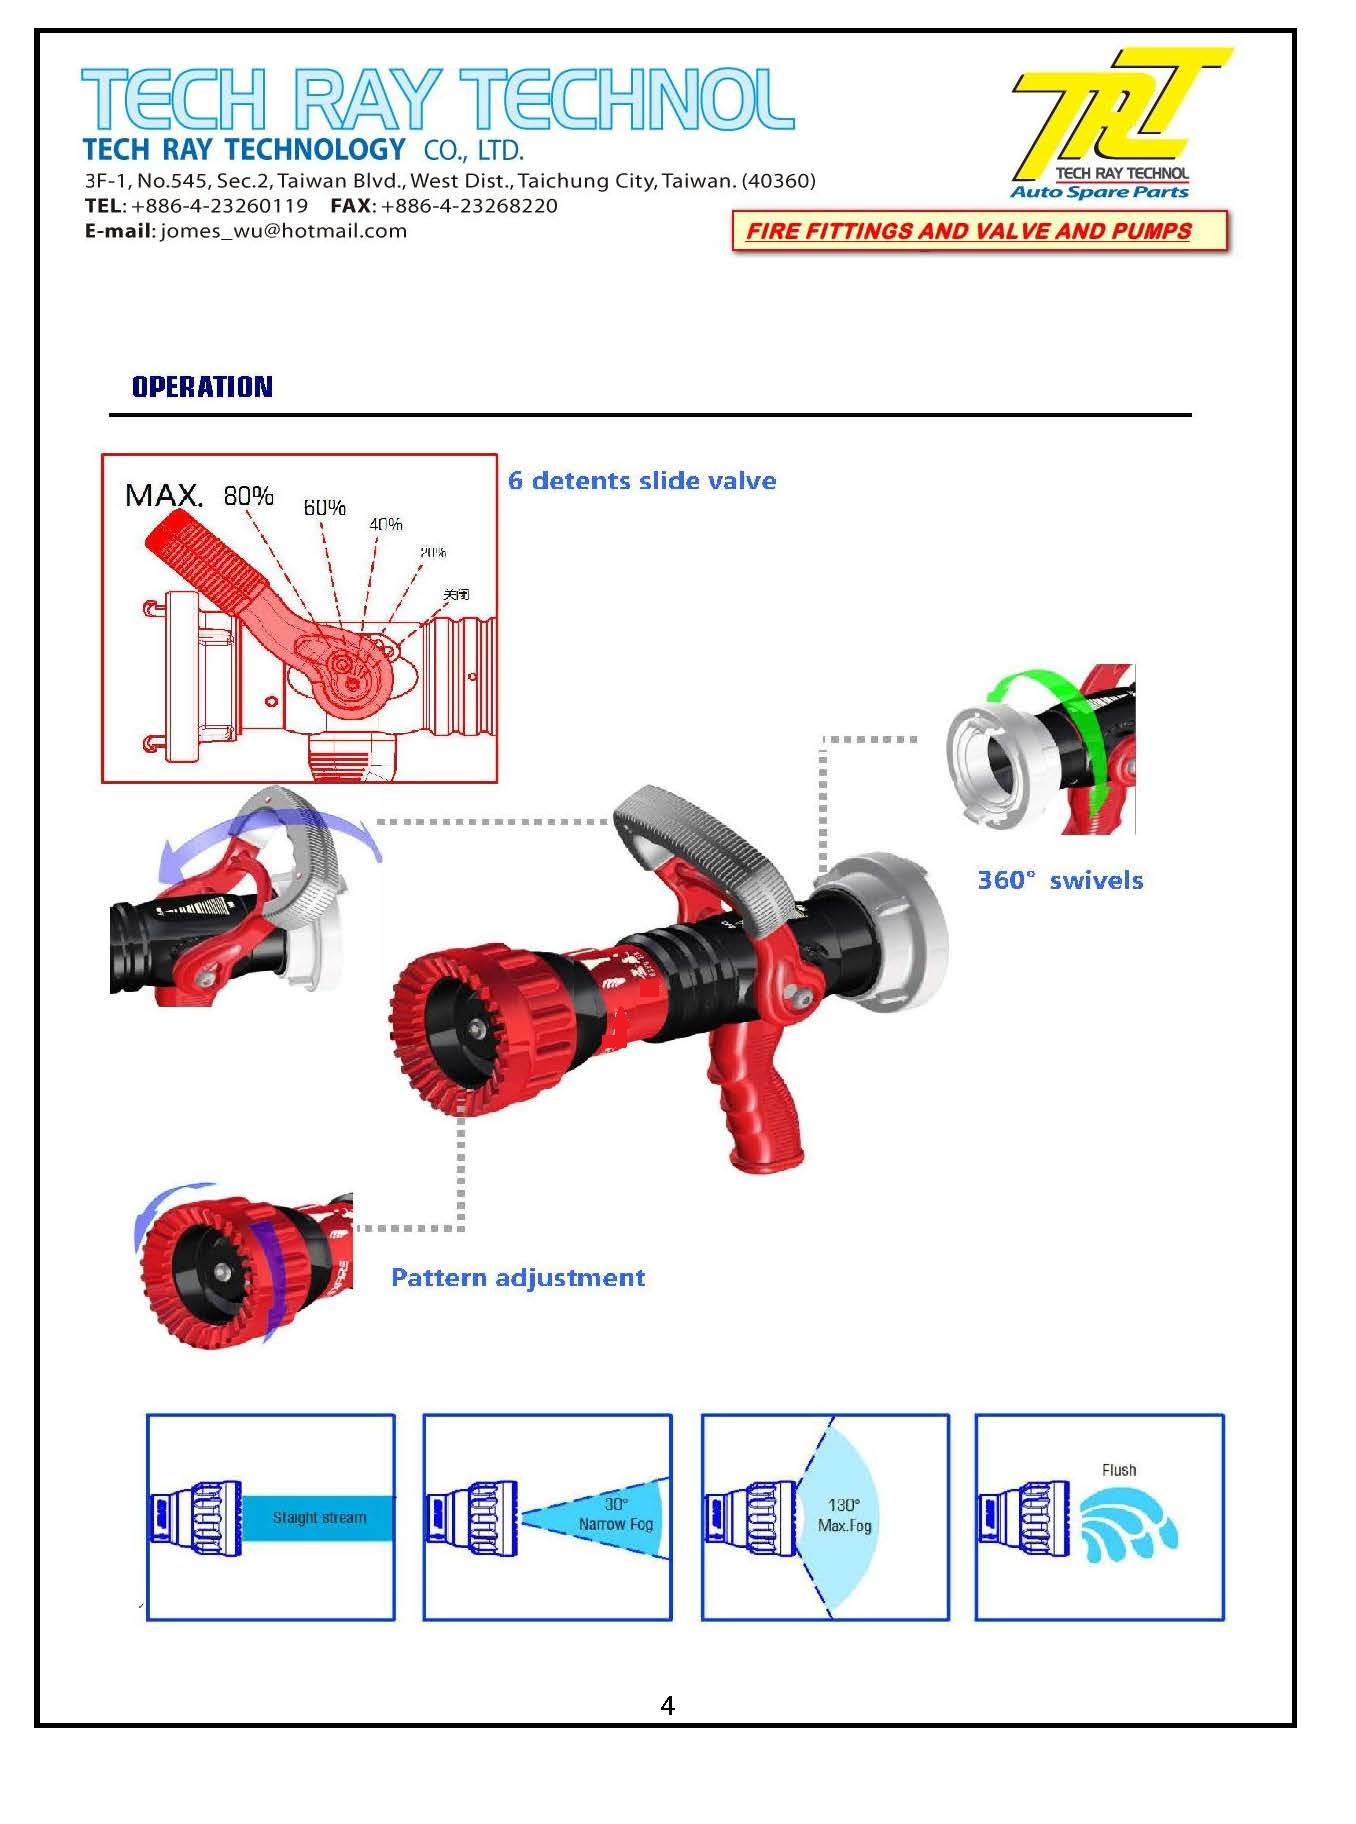 Fire    Nozzle Firefighting Supplies   CHERNG LONG PLASTIC MFG CO  LTD